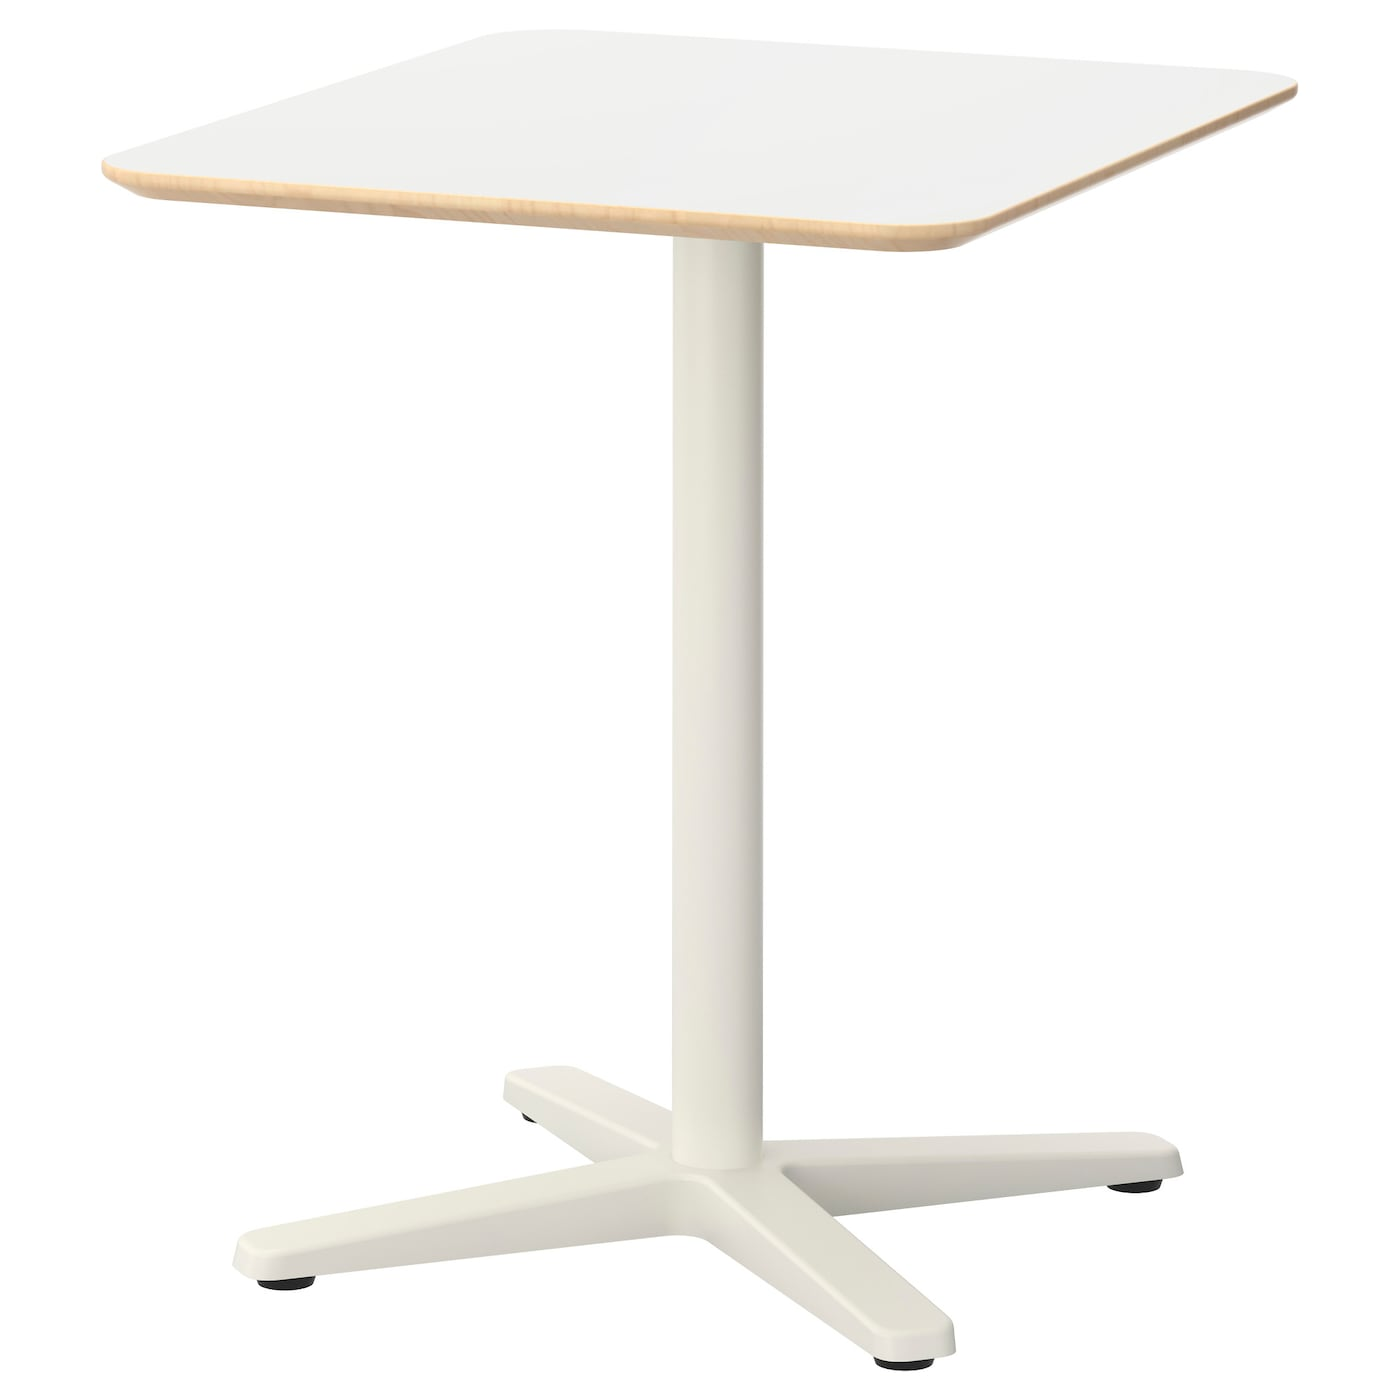 billsta table white white 70 x 60 cm ikea. Black Bedroom Furniture Sets. Home Design Ideas